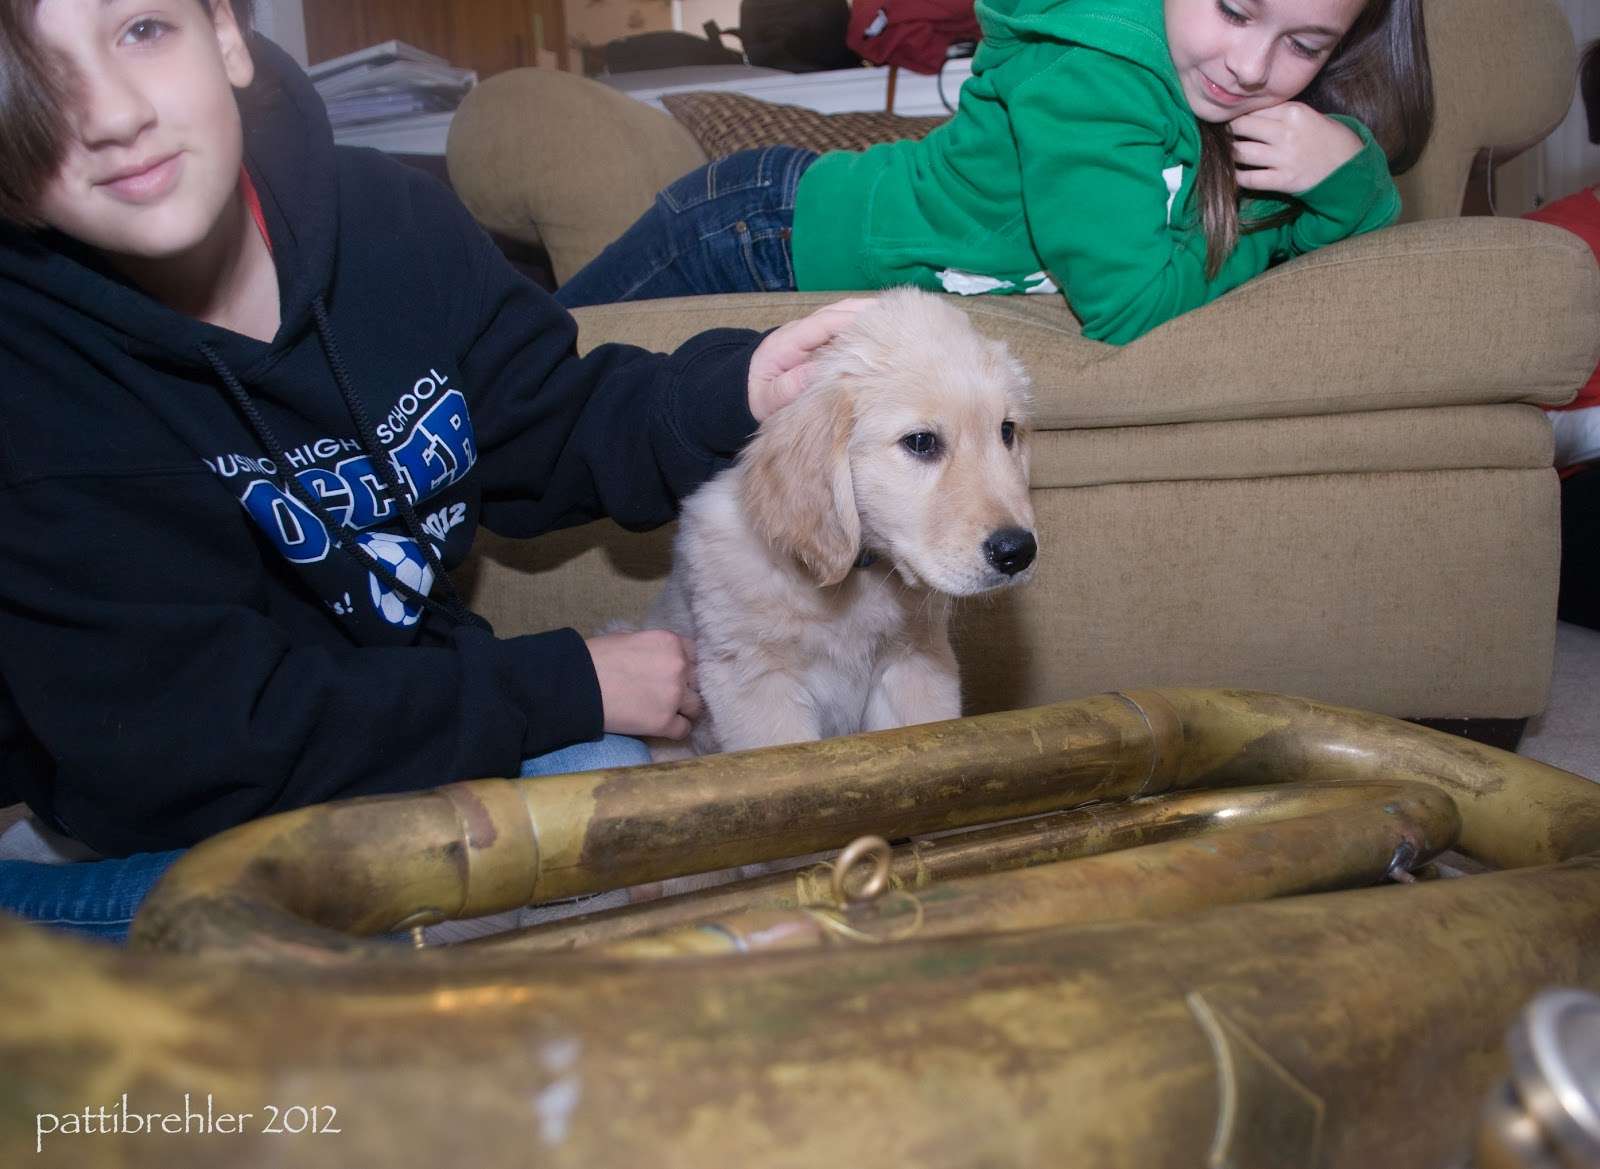 A tuba is on the floor in the foreground. A small golden retriever puppy is sitting behind it. A young girl is sitting on the left side with her left hand on the puppy's head. She has brown hair and is looking at the camera, she is wearing a blue hooded sweatshirt. On a soft tan chair behind the girl and the puppy another girl with long brown hair is laying on her belly on her elbows, she is looking down at the puppy. She is wearing a green hooded sweatshirt and blue jeans.